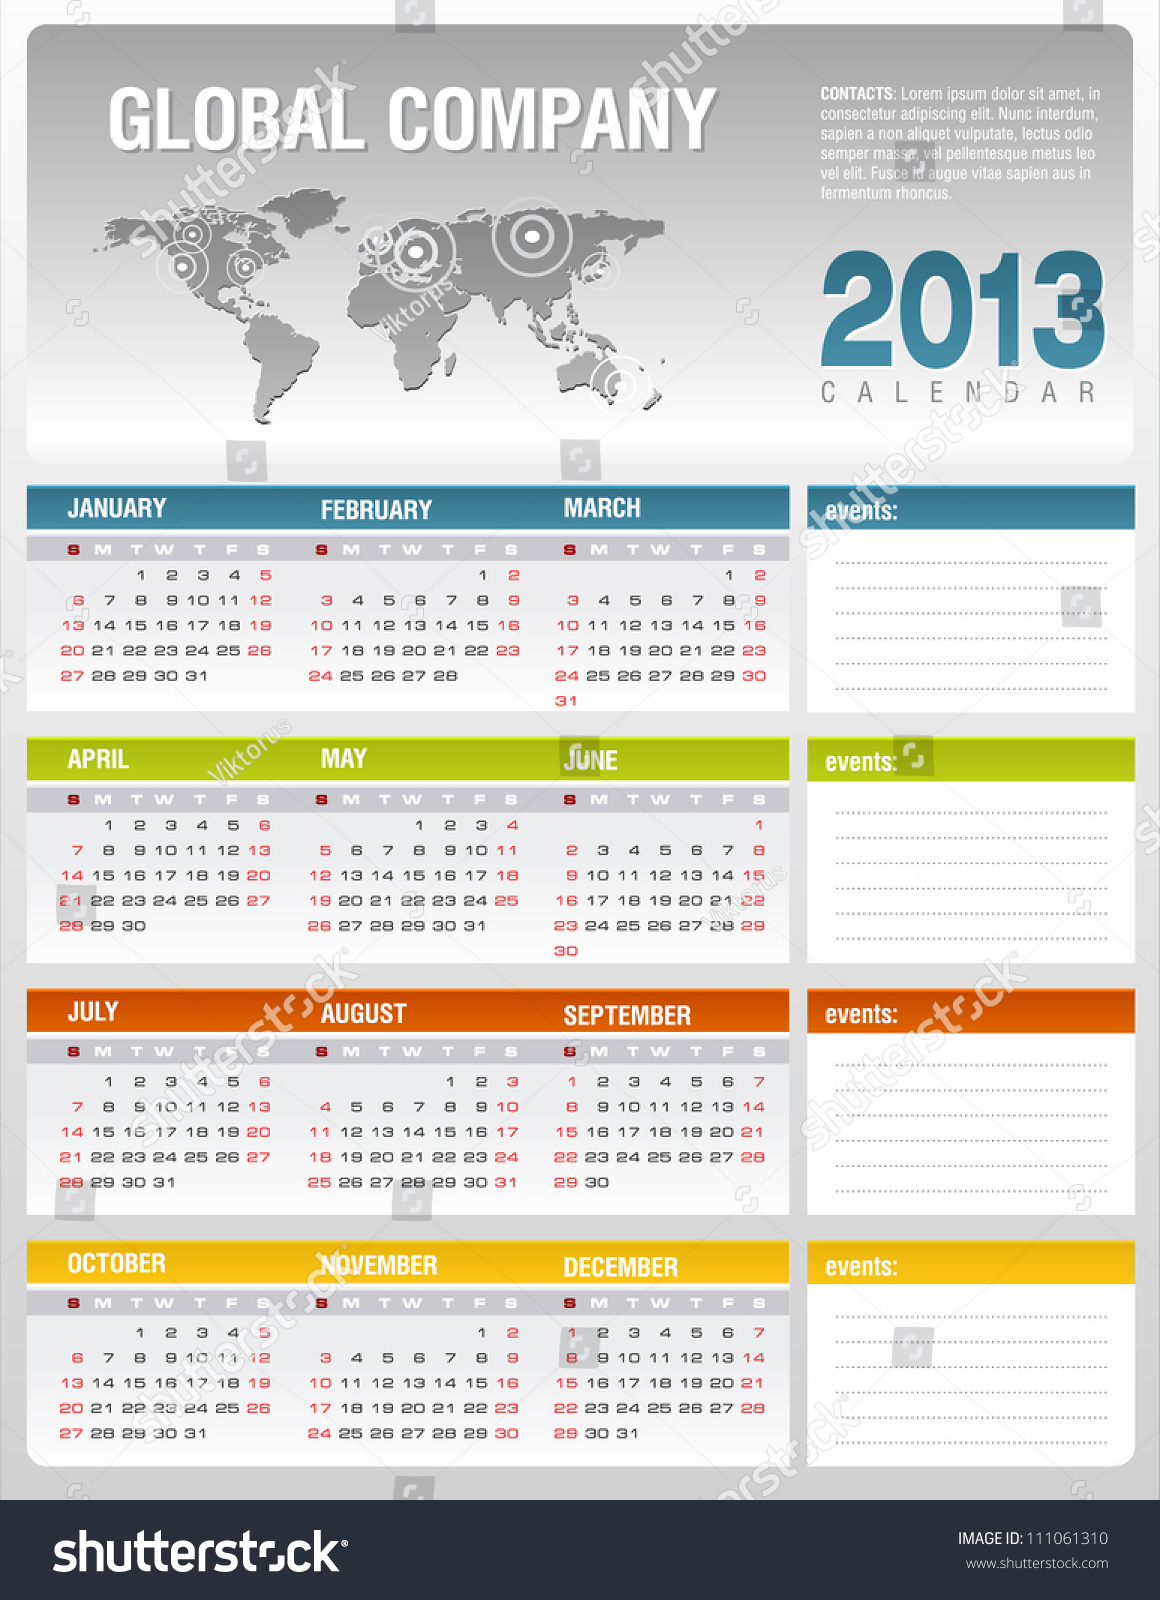 Corporate Calendar Template : Corporate calendar template vector stock